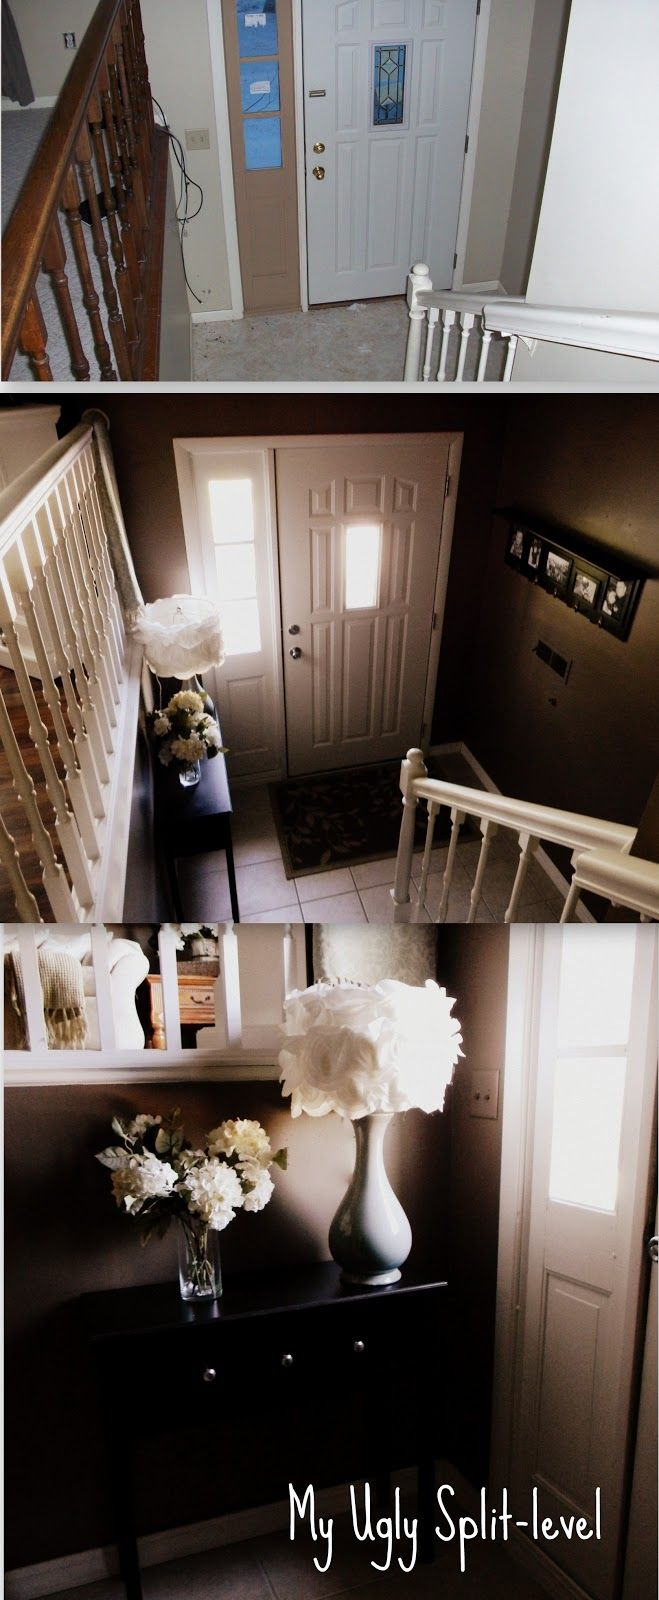 A Split Level Gets A Praire Style Facelift In Mclean Va: My Ugly Split-level: Entryway